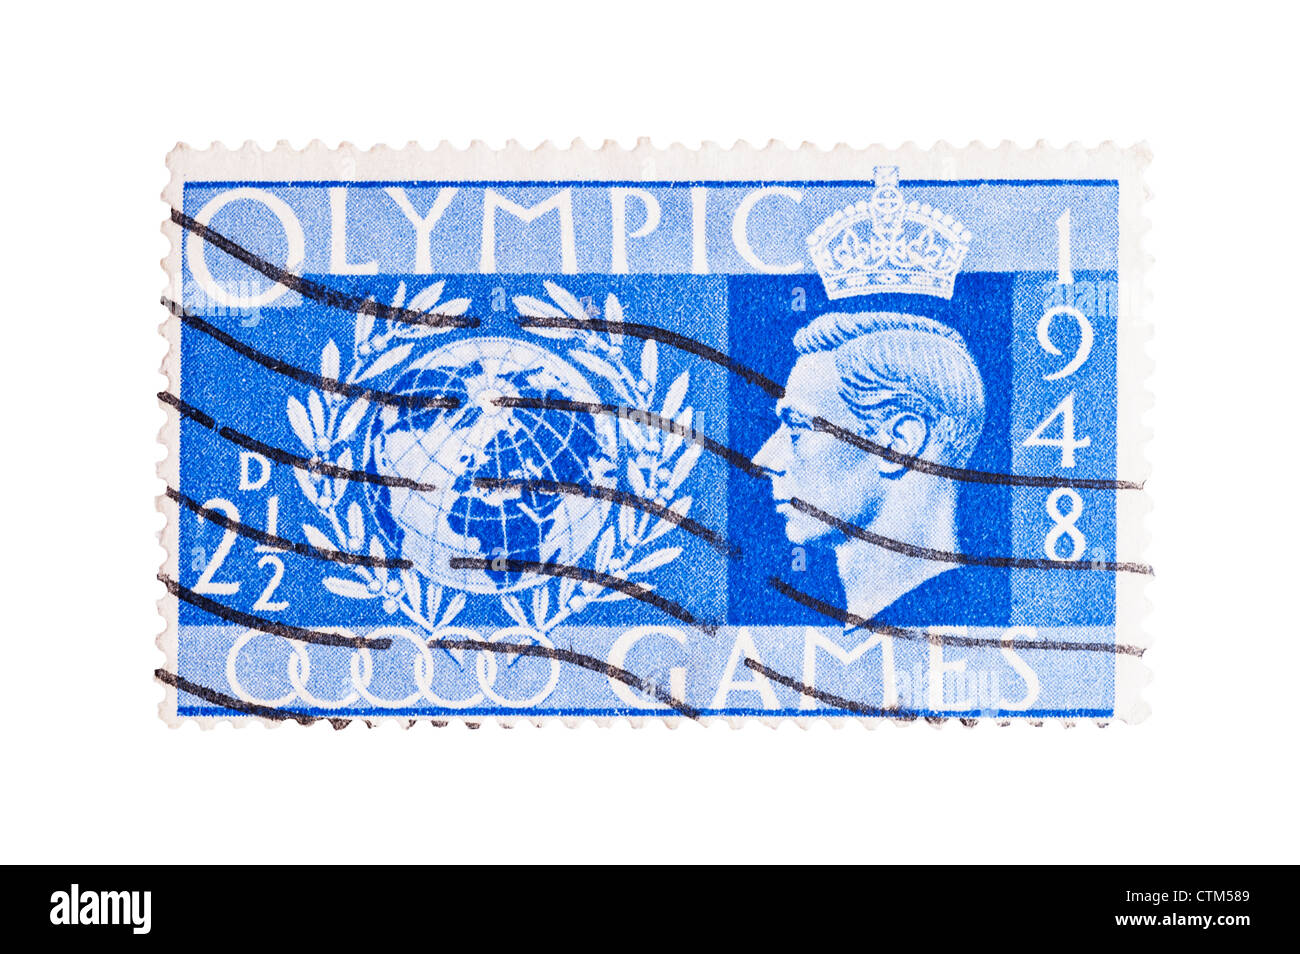 A King George VI two and a half pence blue 2 1/2d Olympic Games 1948 postage stamp on a white background - Stock Image